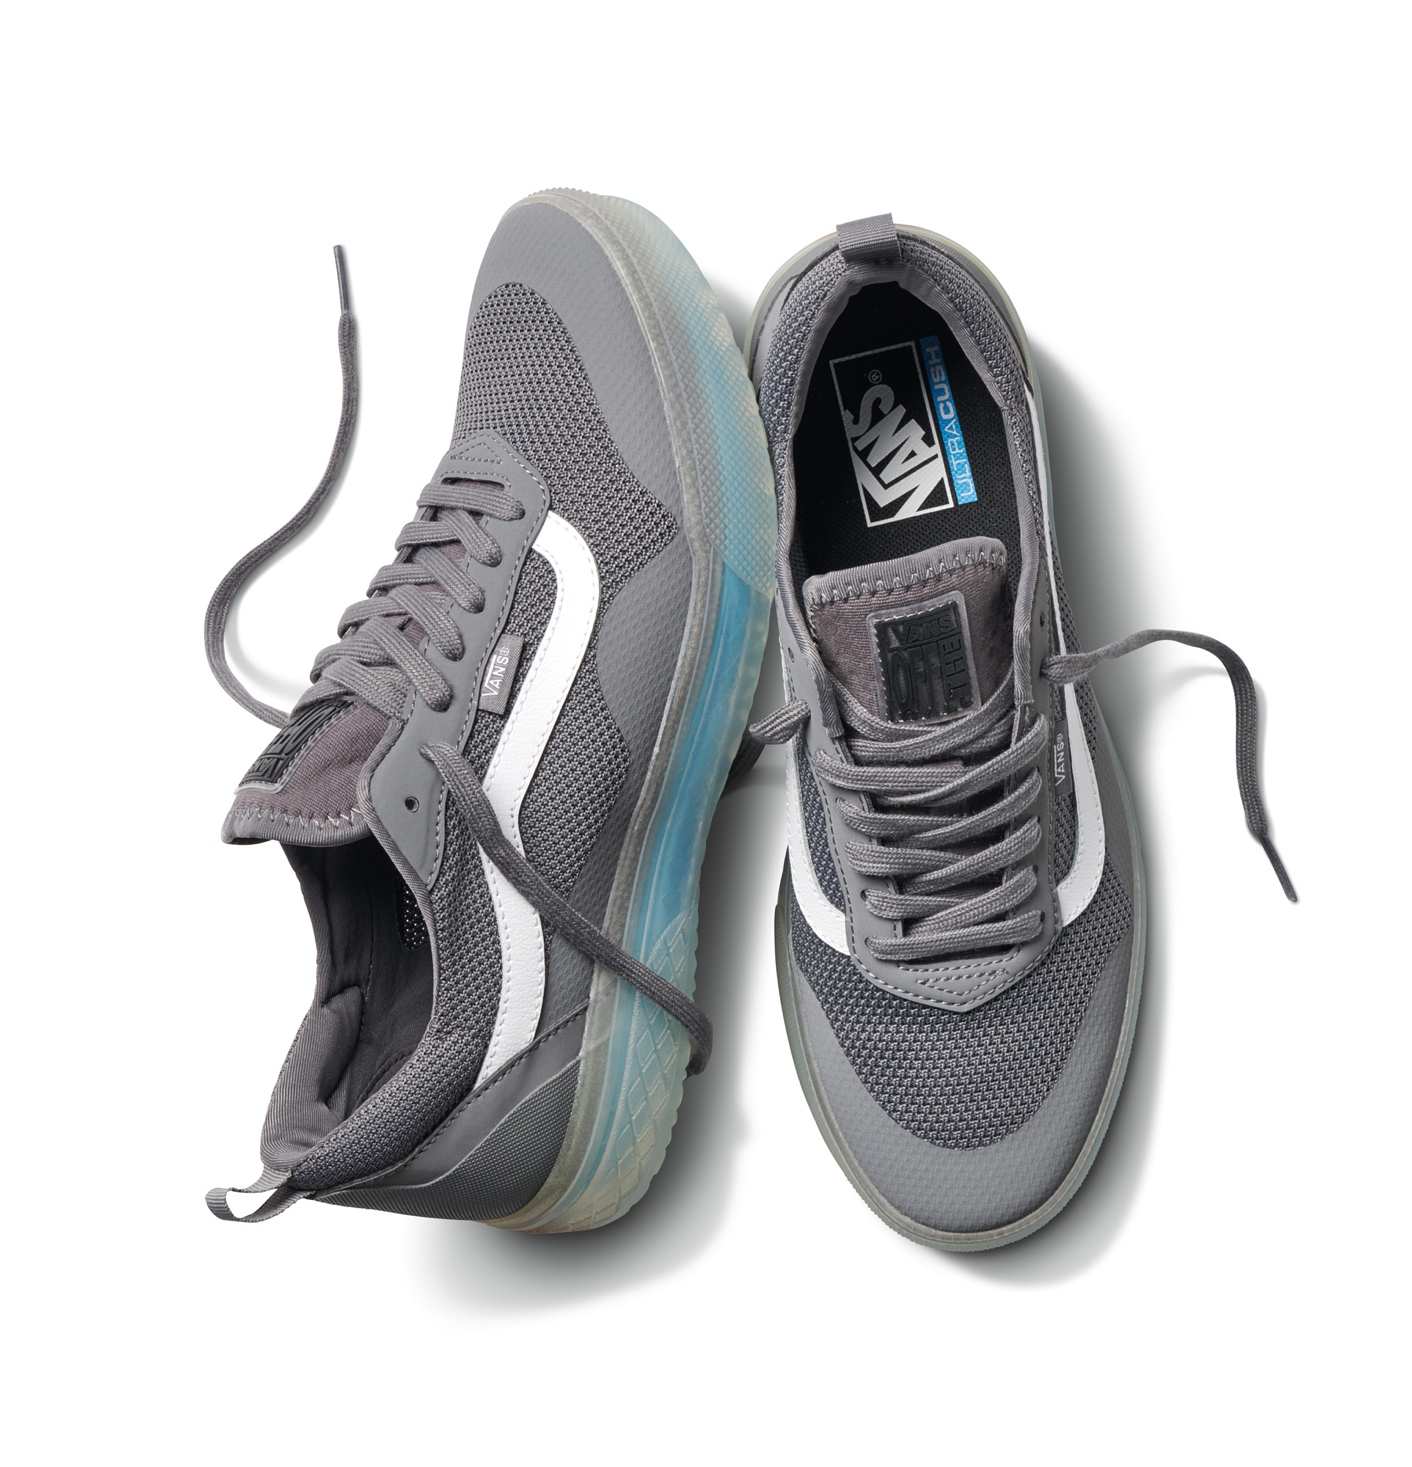 Introducing The Vans Mod RapidWeld